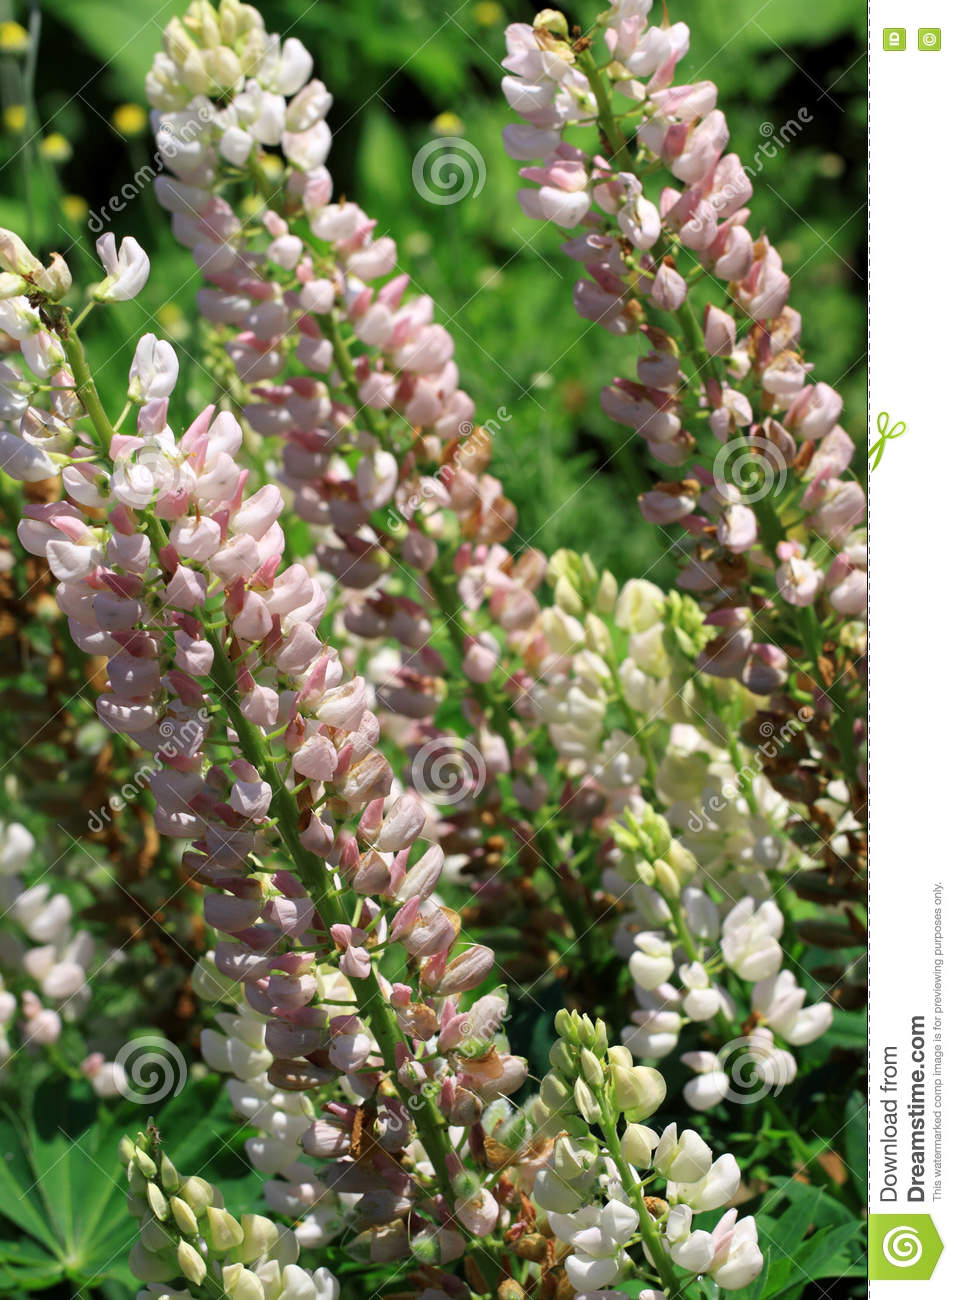 Light Pink To White Lupine Flowers Lupinus Polyphyllus Stock Photo